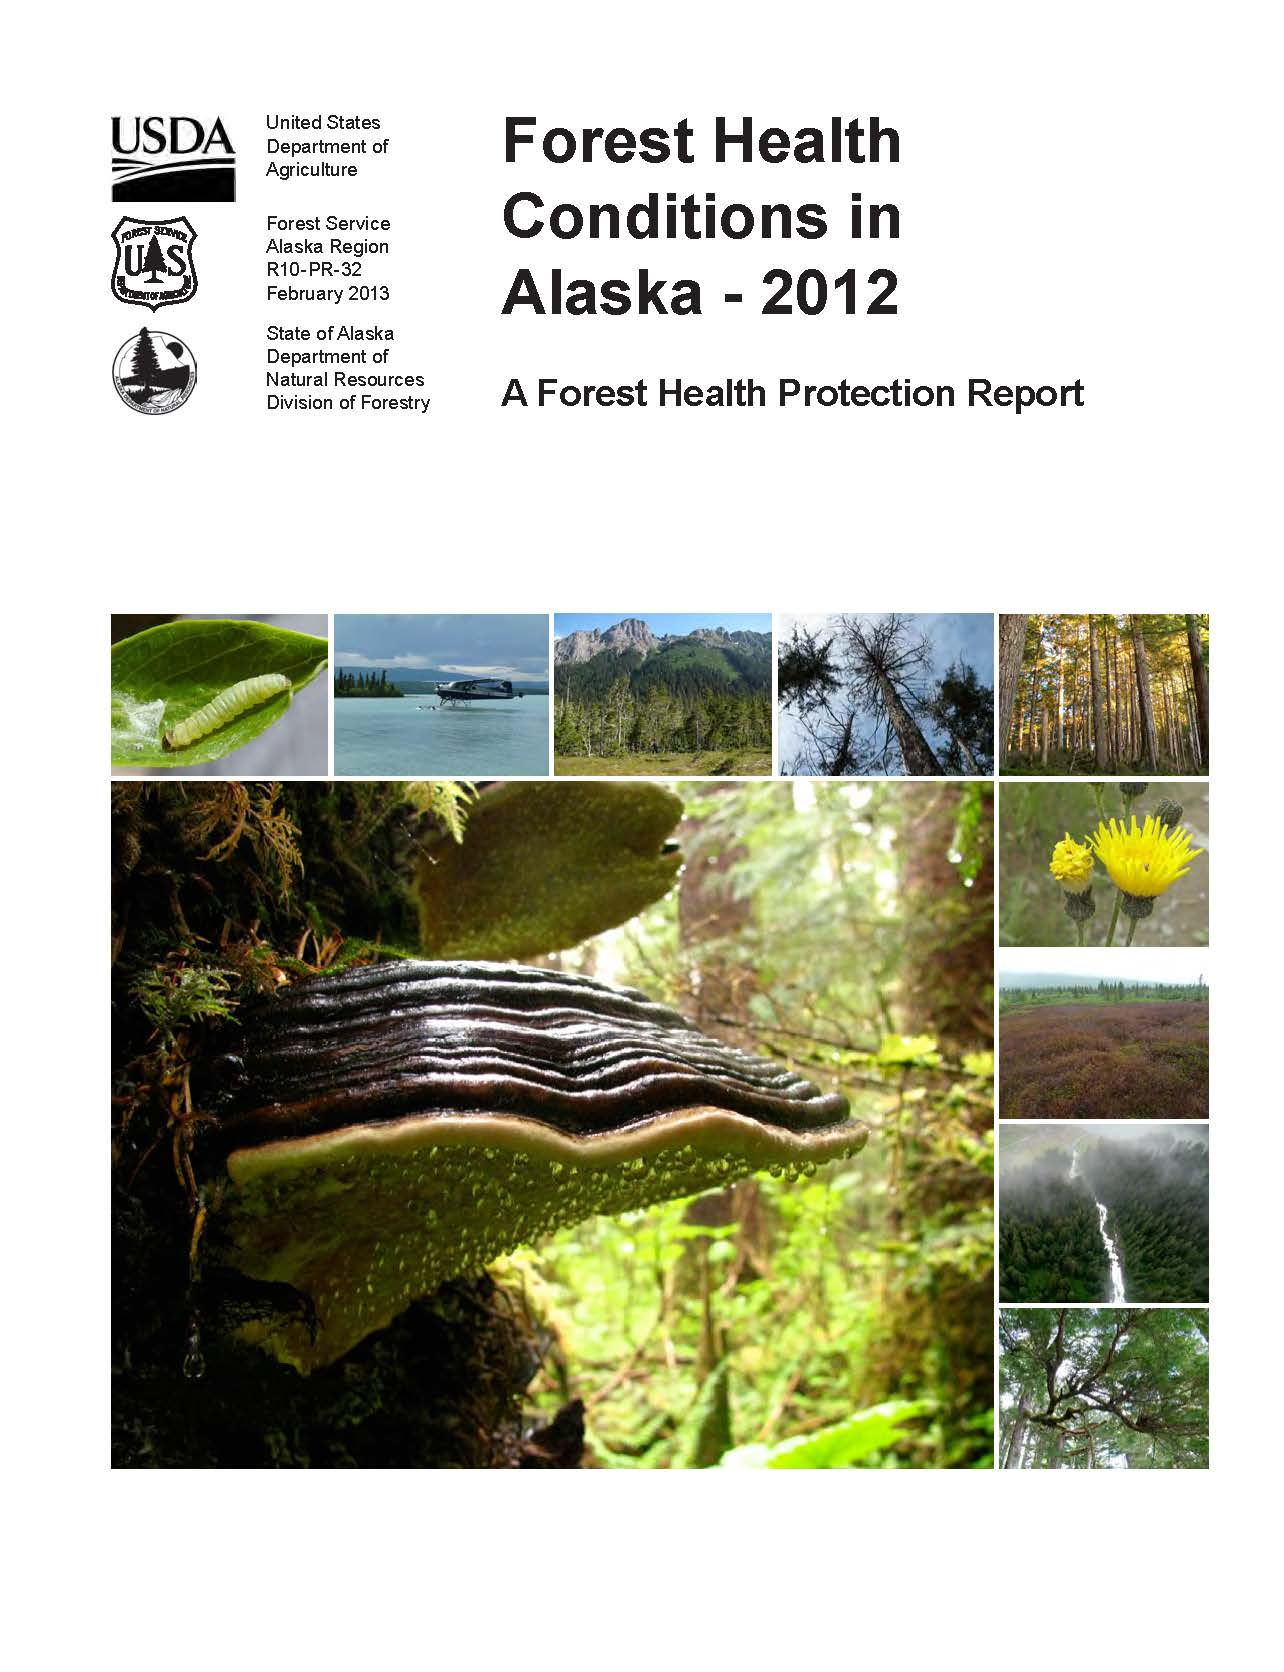 Cover photos of the 2012 Alaska Forest Health Conditions Report